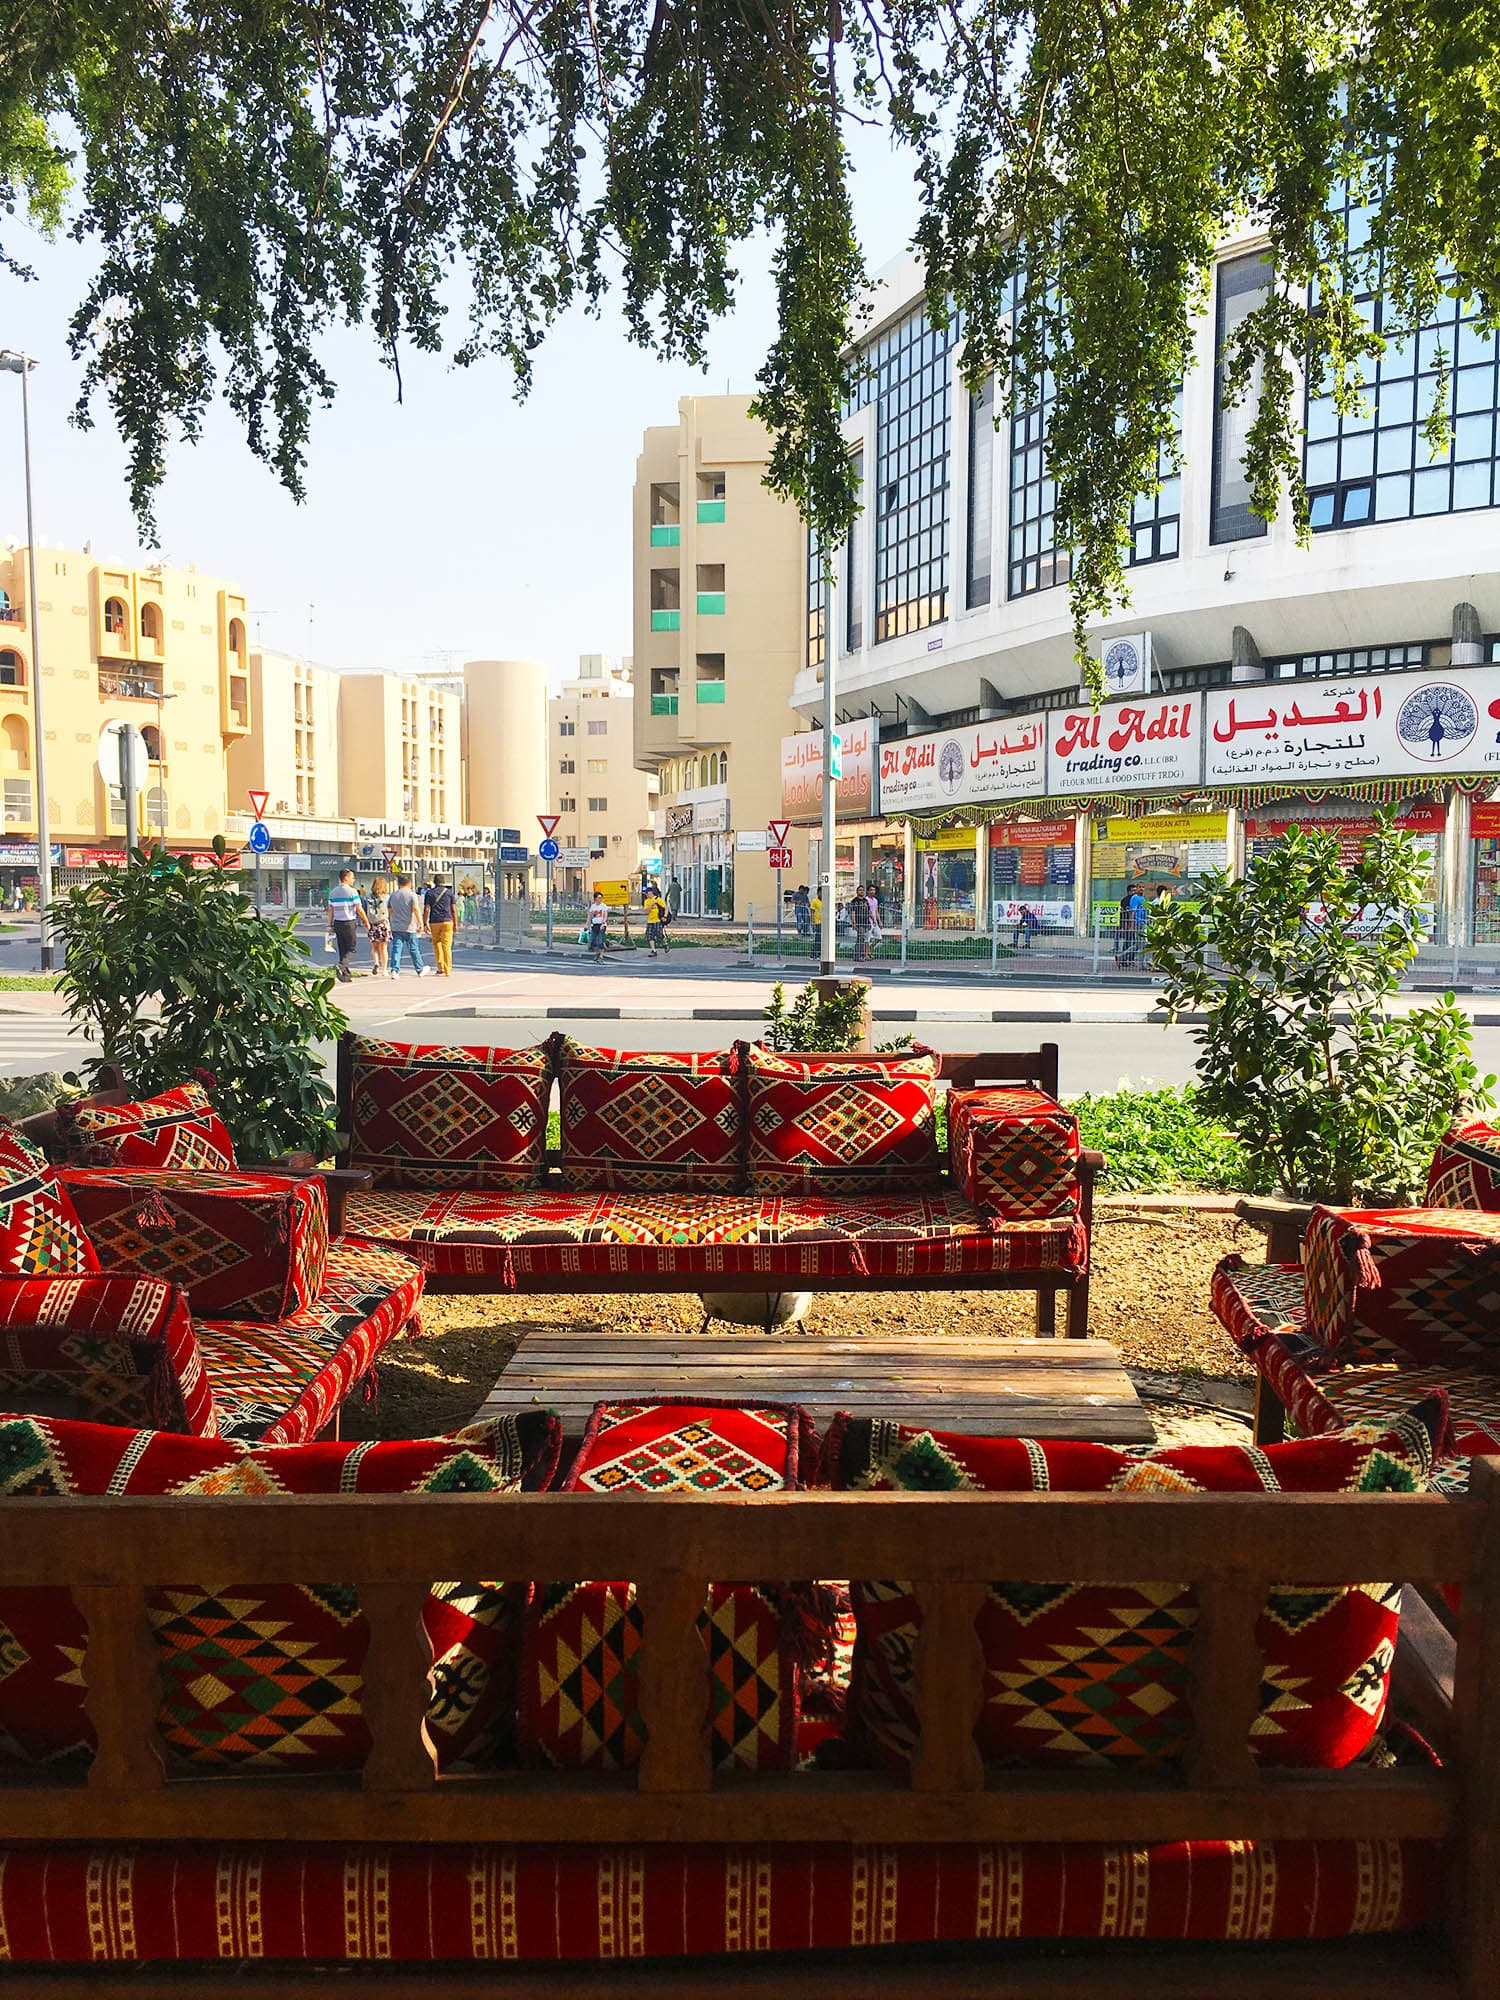 An Arabic *majlis* (sitting area) outside one of the cafes in Al Fahidi.